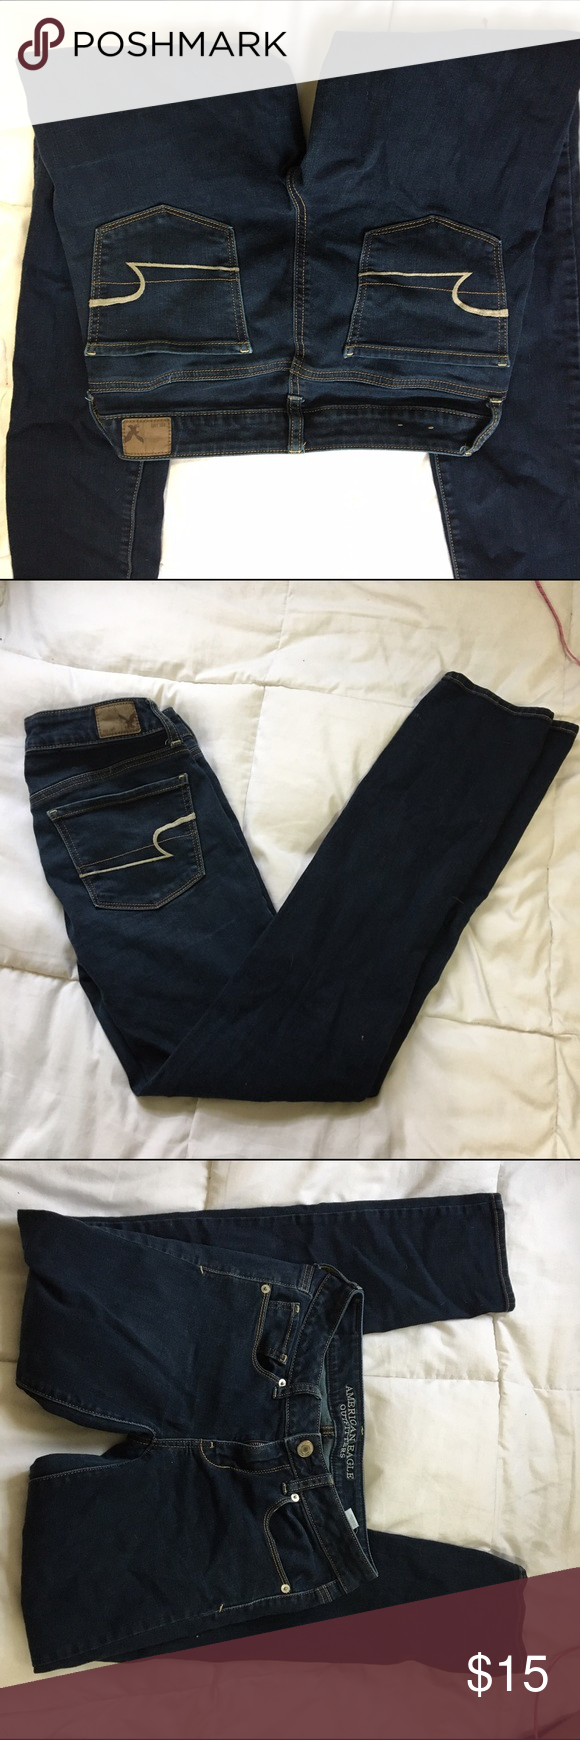 American eagle jeggings Dark blue AE jeggings, soft and stretchy, just don't wear them often. No damage :) American Eagle Outfitters Jeans Skinny